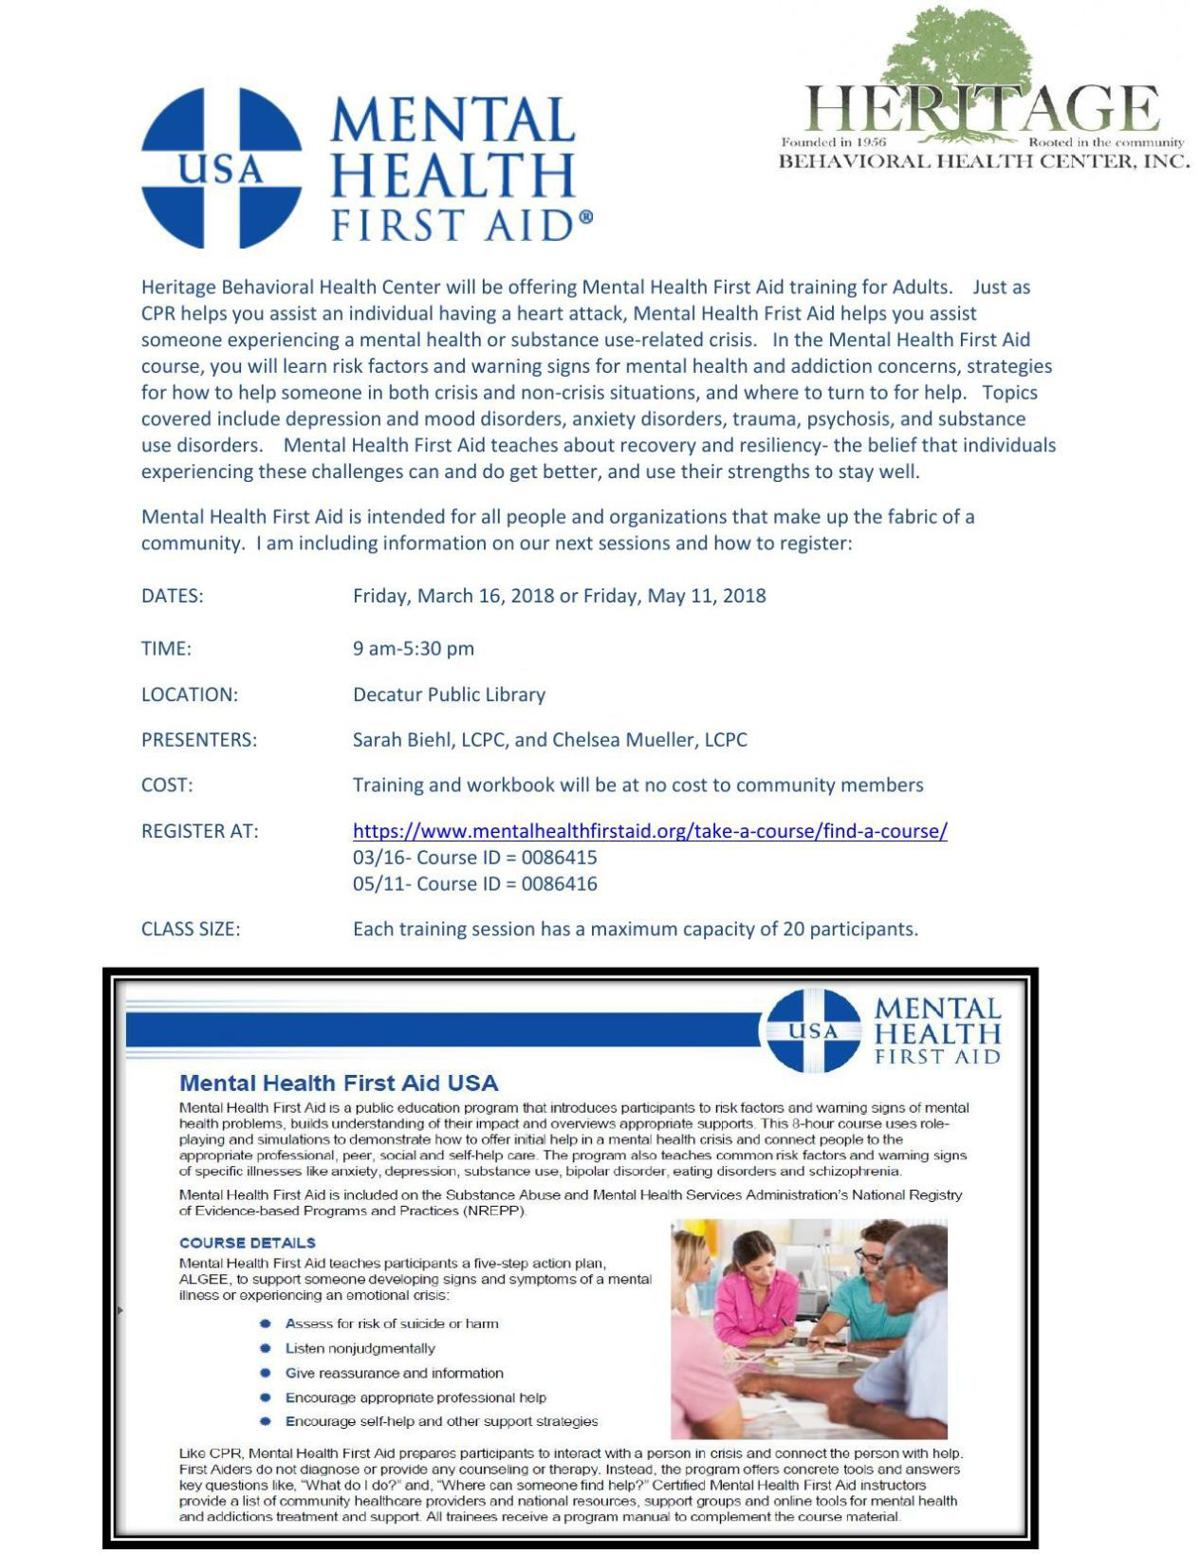 Heritage offering mental health first aid courses in ...